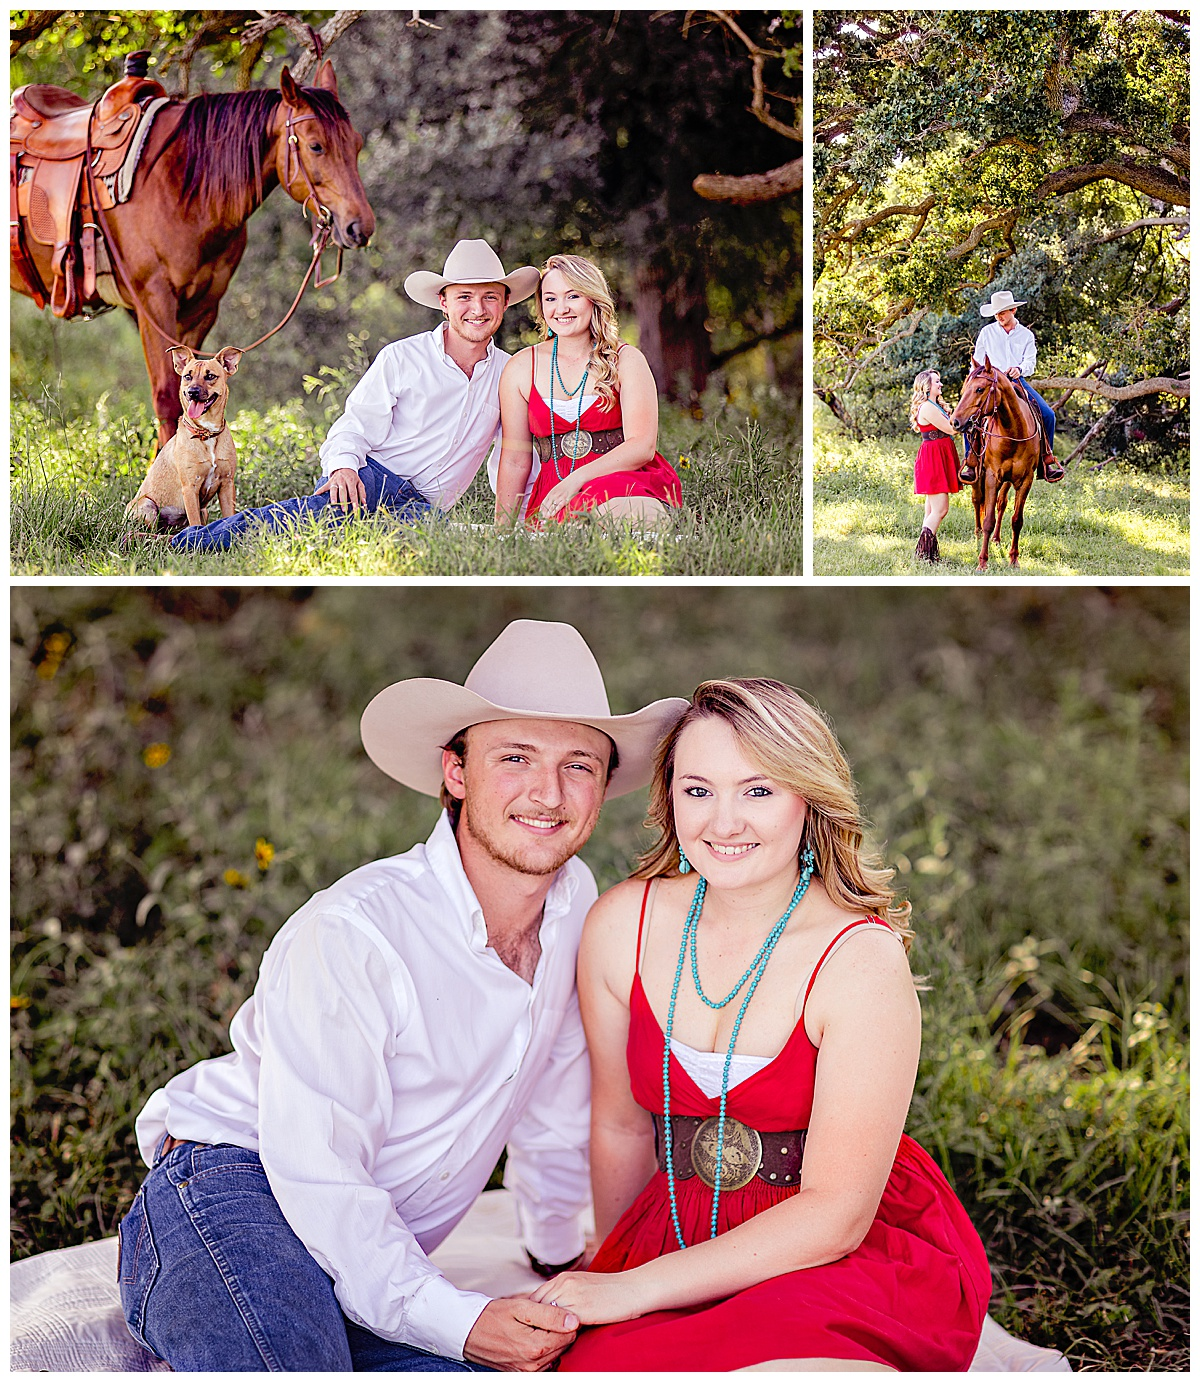 Rustic-Engagement-Session-Horse-Texas-Sunset-Carly-Barton-Photography_0008.jpg